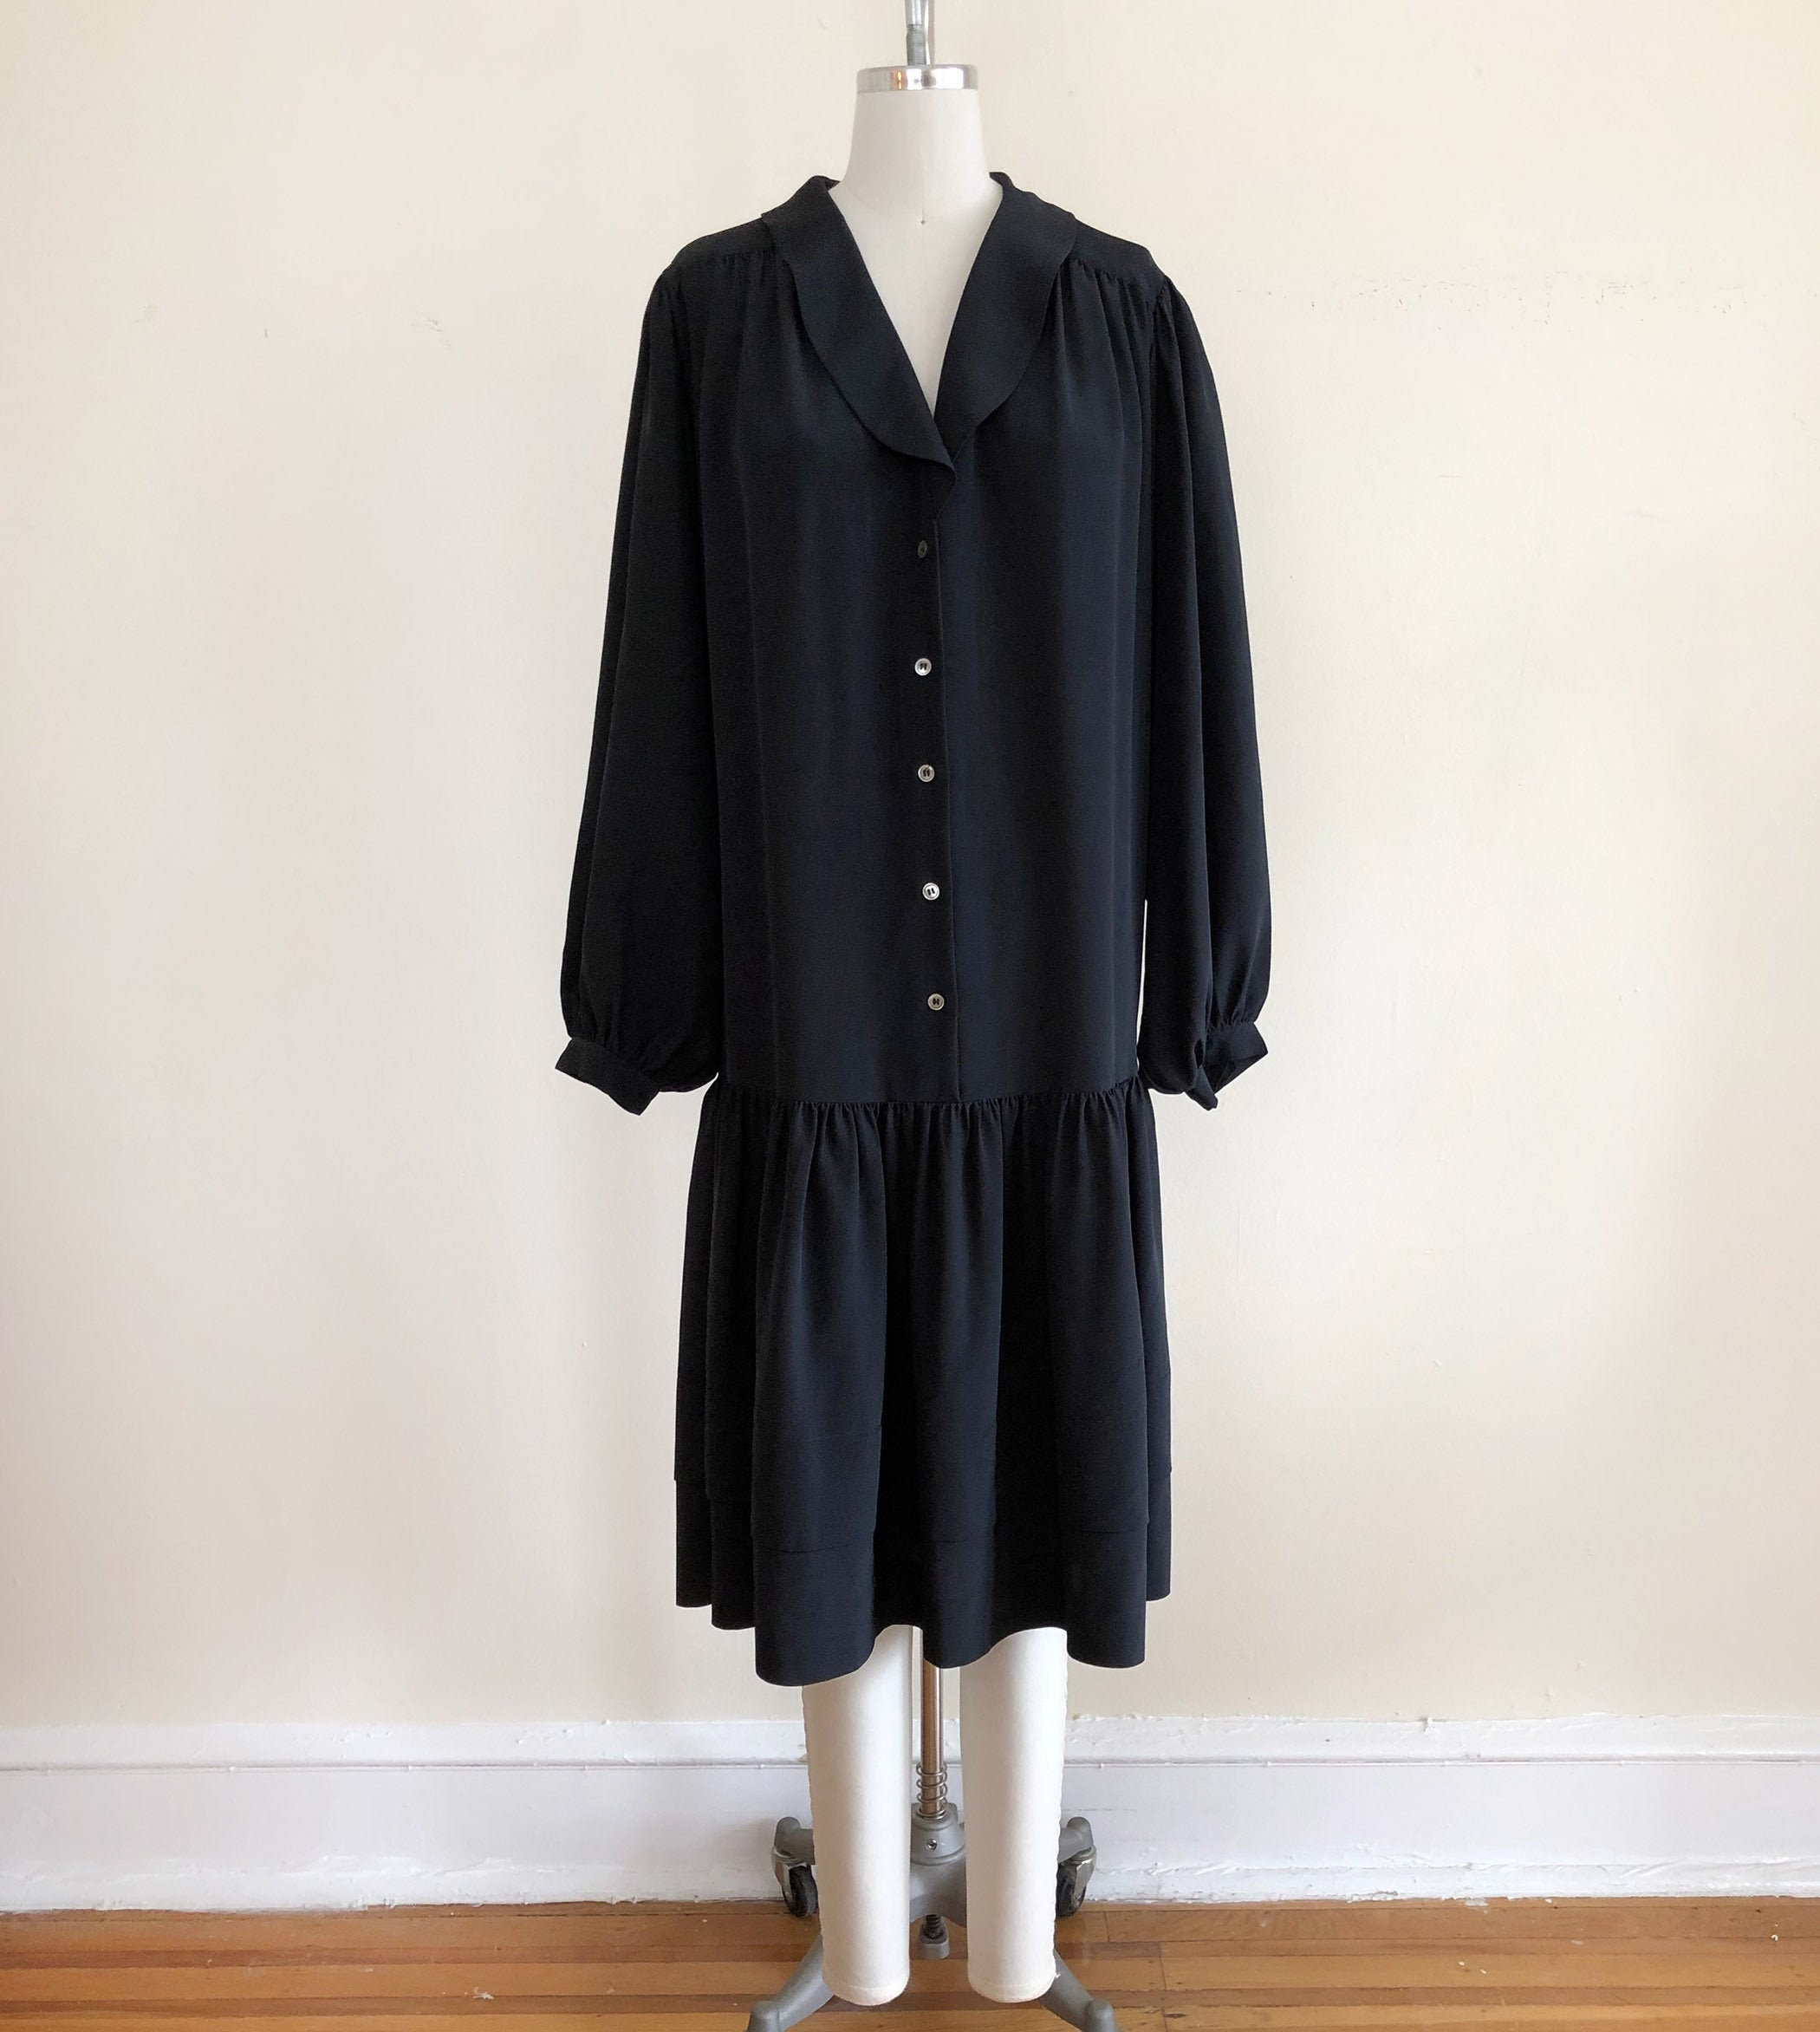 80s Dresses | Casual to Party Dresses Oversized, Black Midi Dress With Rounded Collar  Drop-Wasit - 1980S $28.00 AT vintagedancer.com